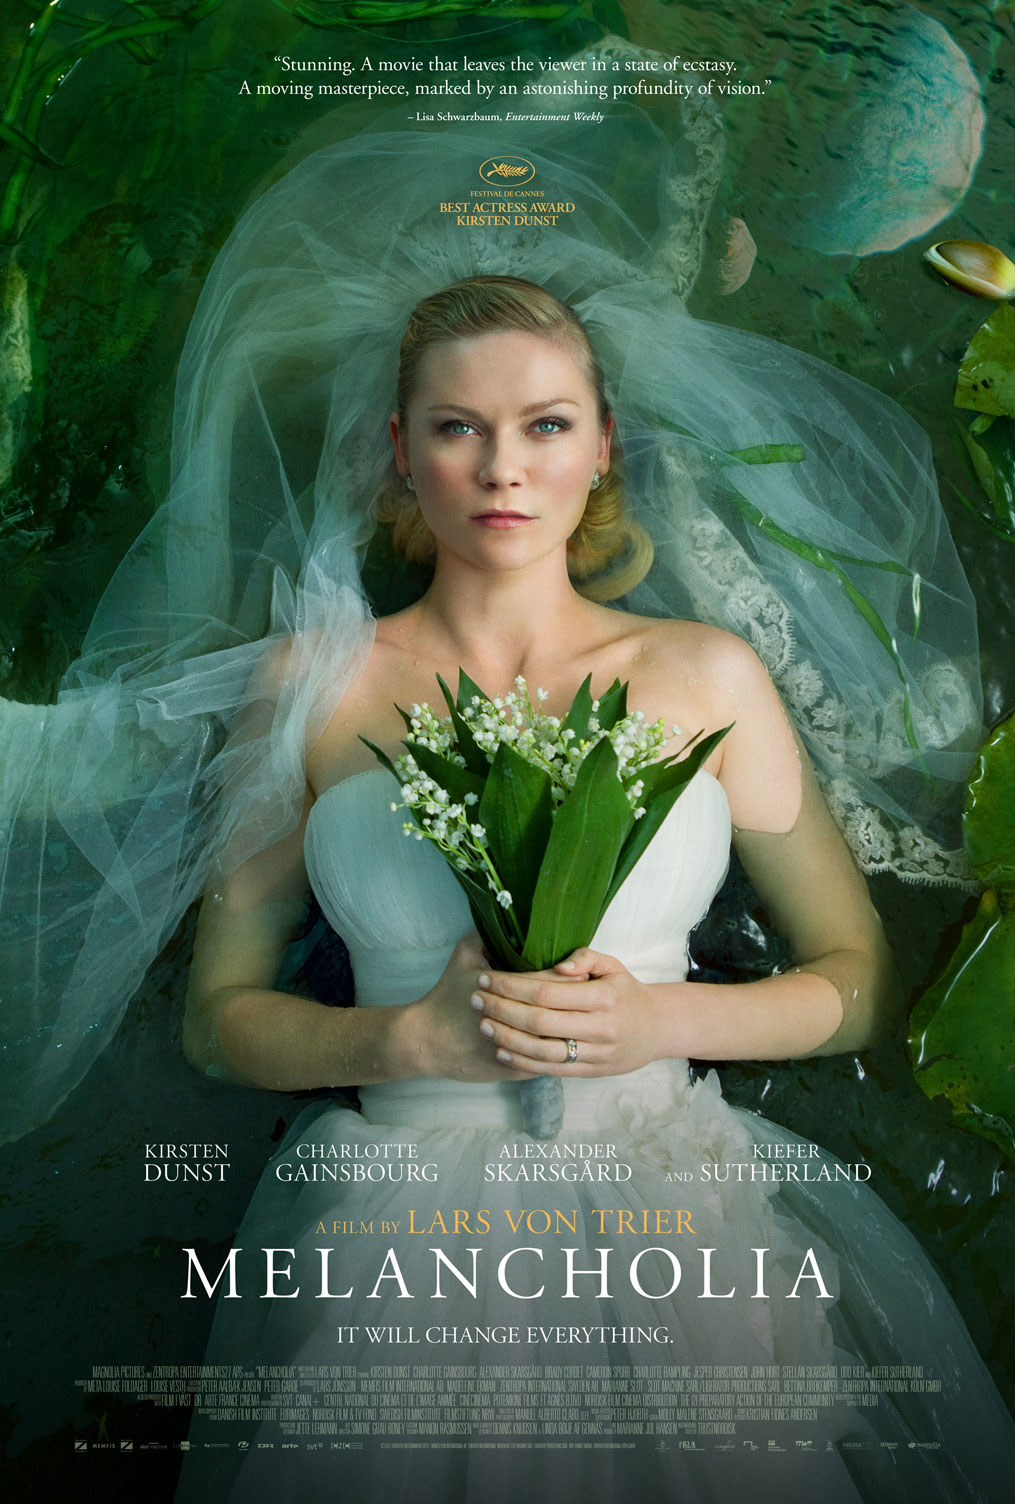 20120924-melancholia-movie-poster.jpg